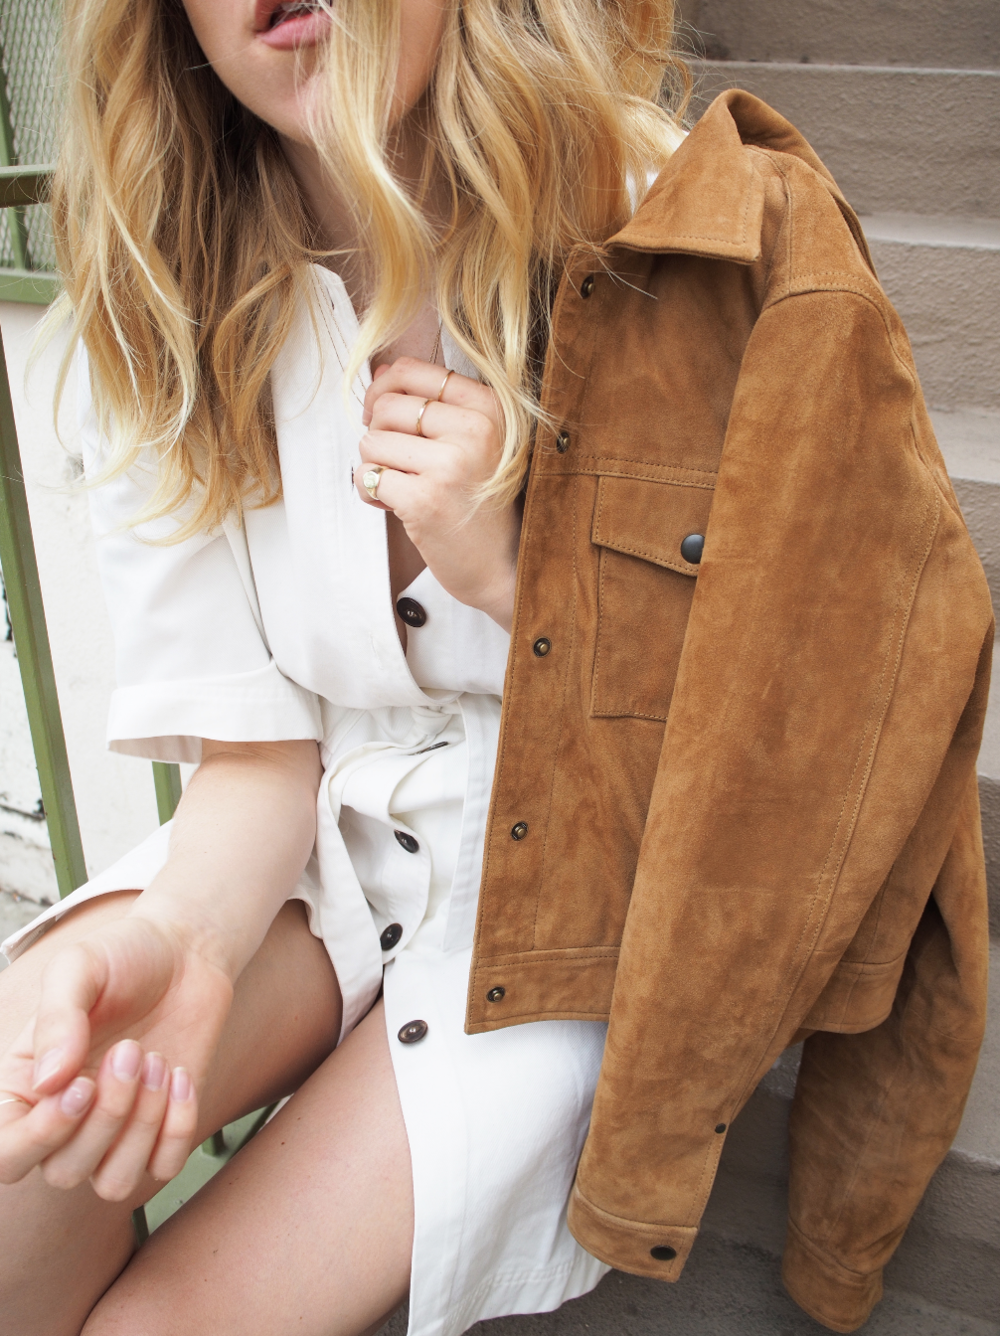 5 Looks That Pair Camel & White Perfectly — Bloglovin'—the Edit